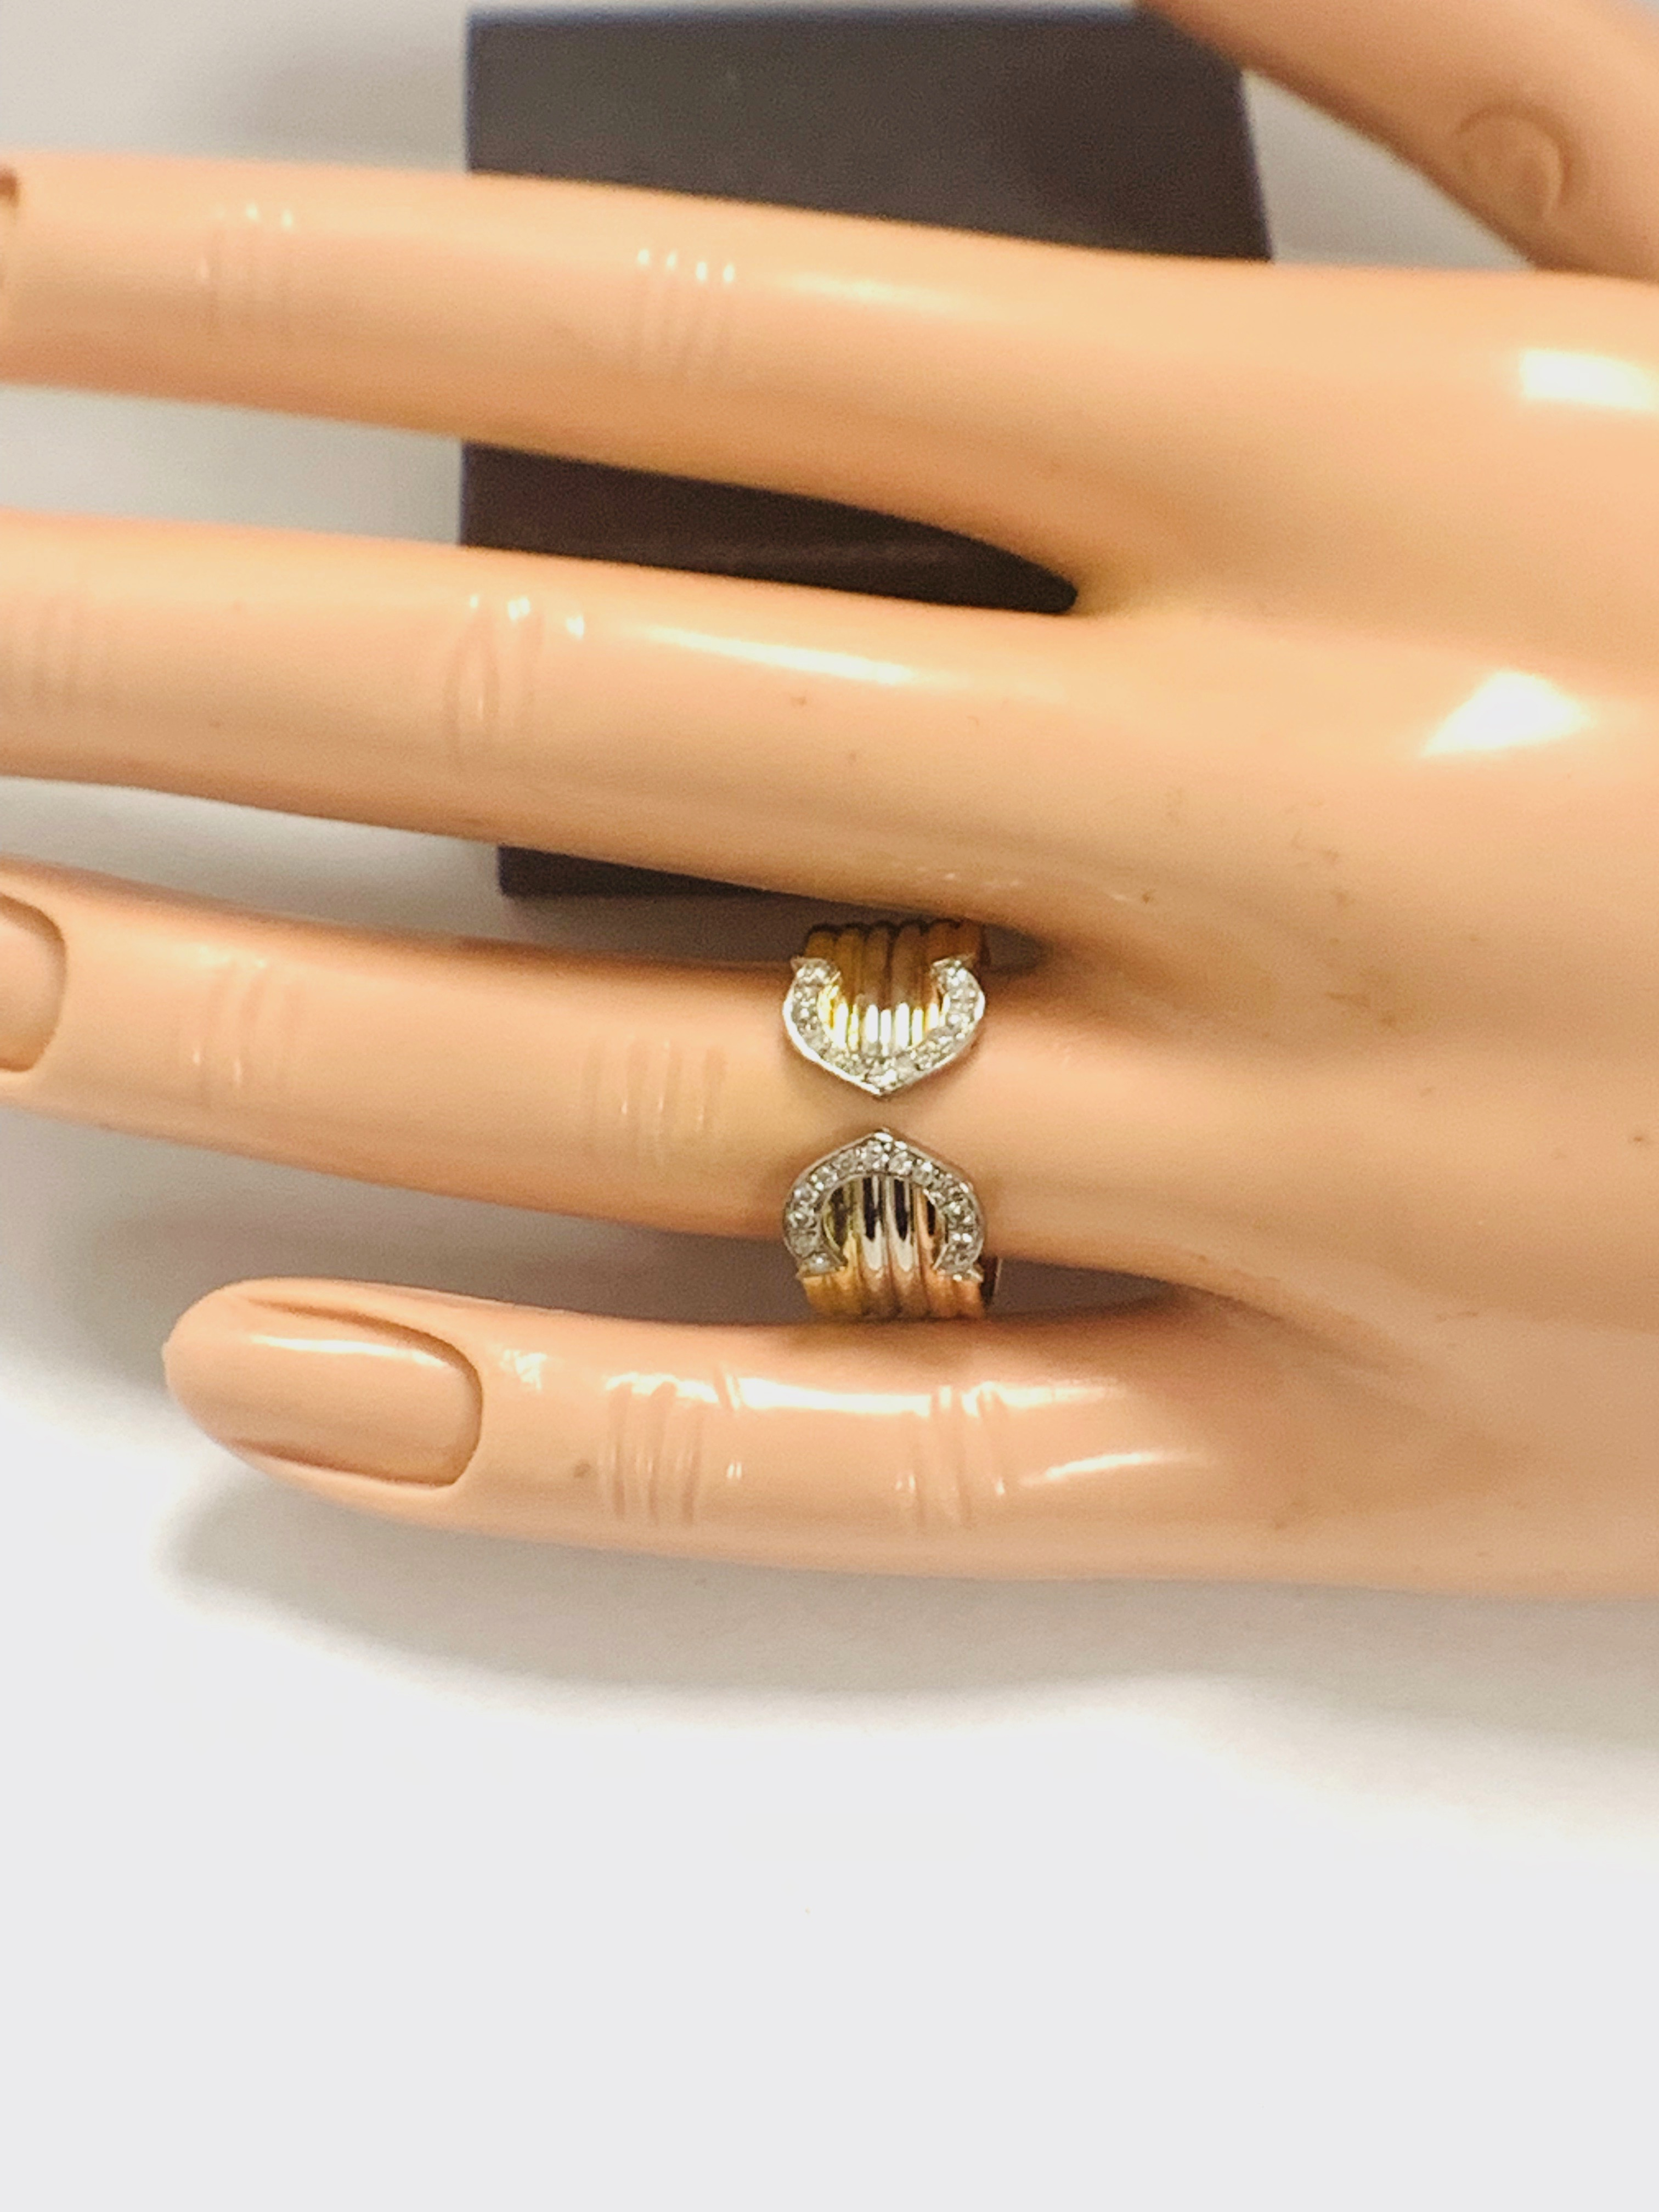 18ct 3 Toned Gold Diamond Chanel ring - Image 9 of 11